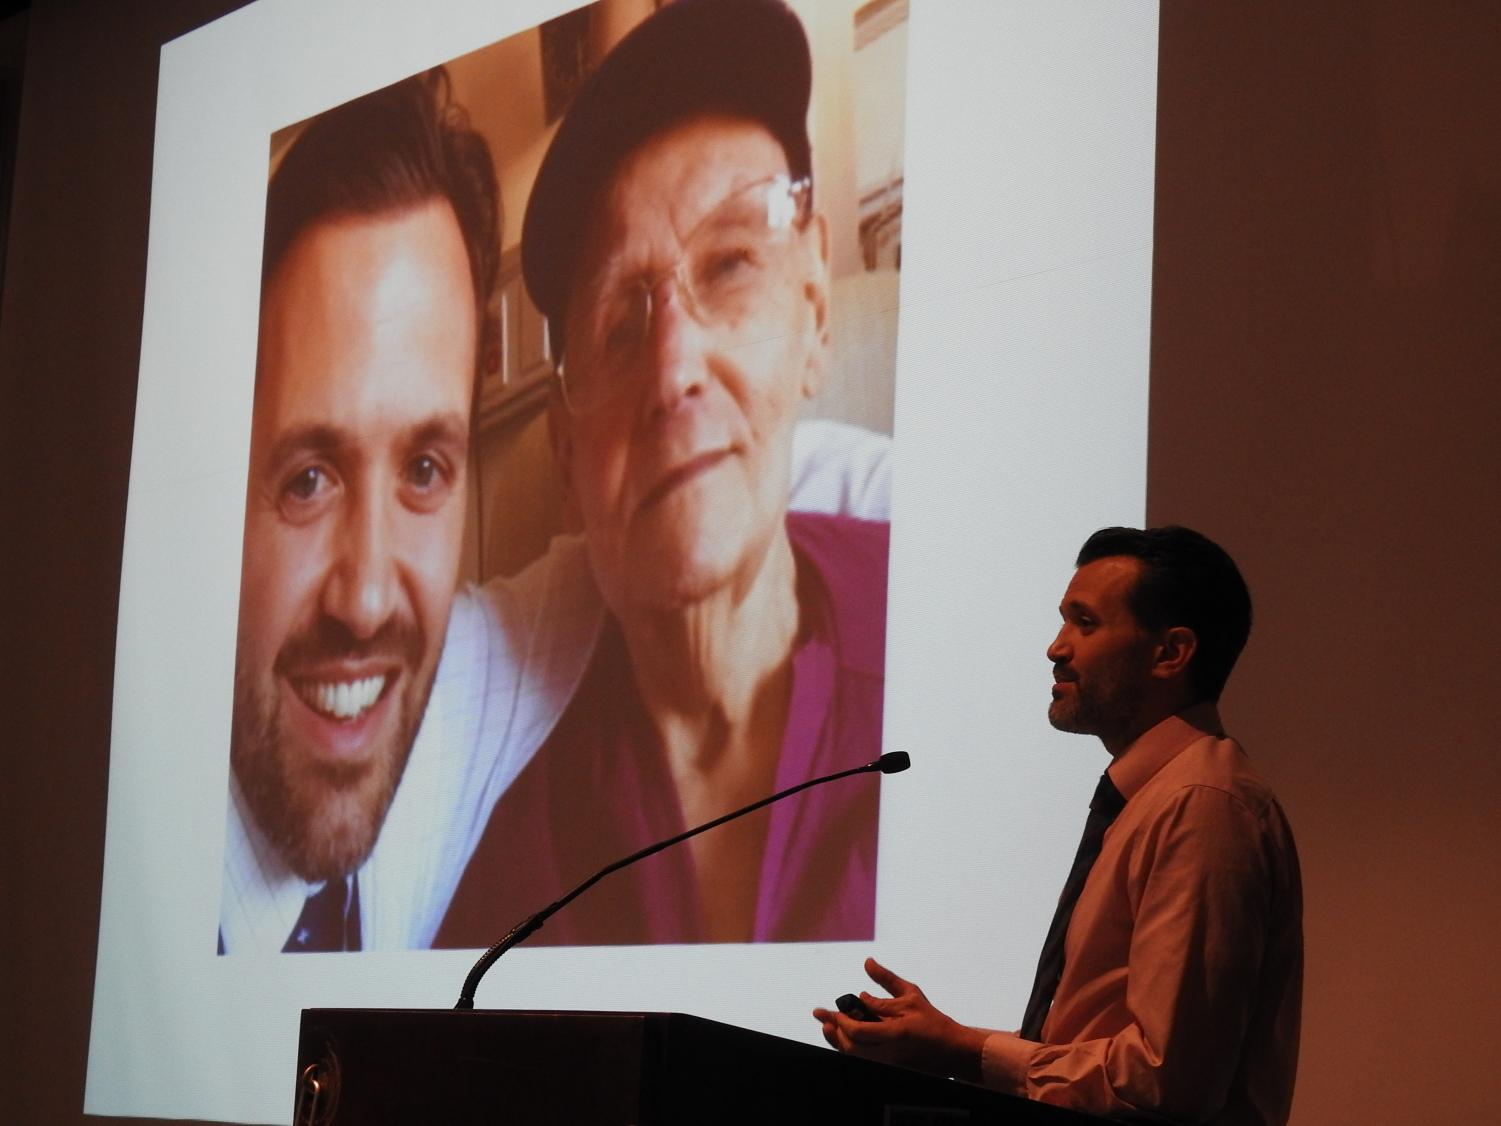 Dr. Gaetan Sgro recalled a story last Tuesday of a 92-year-old World War II veteran he met while working as a physician to Pitt-Johnstown students in Blackington Hall.